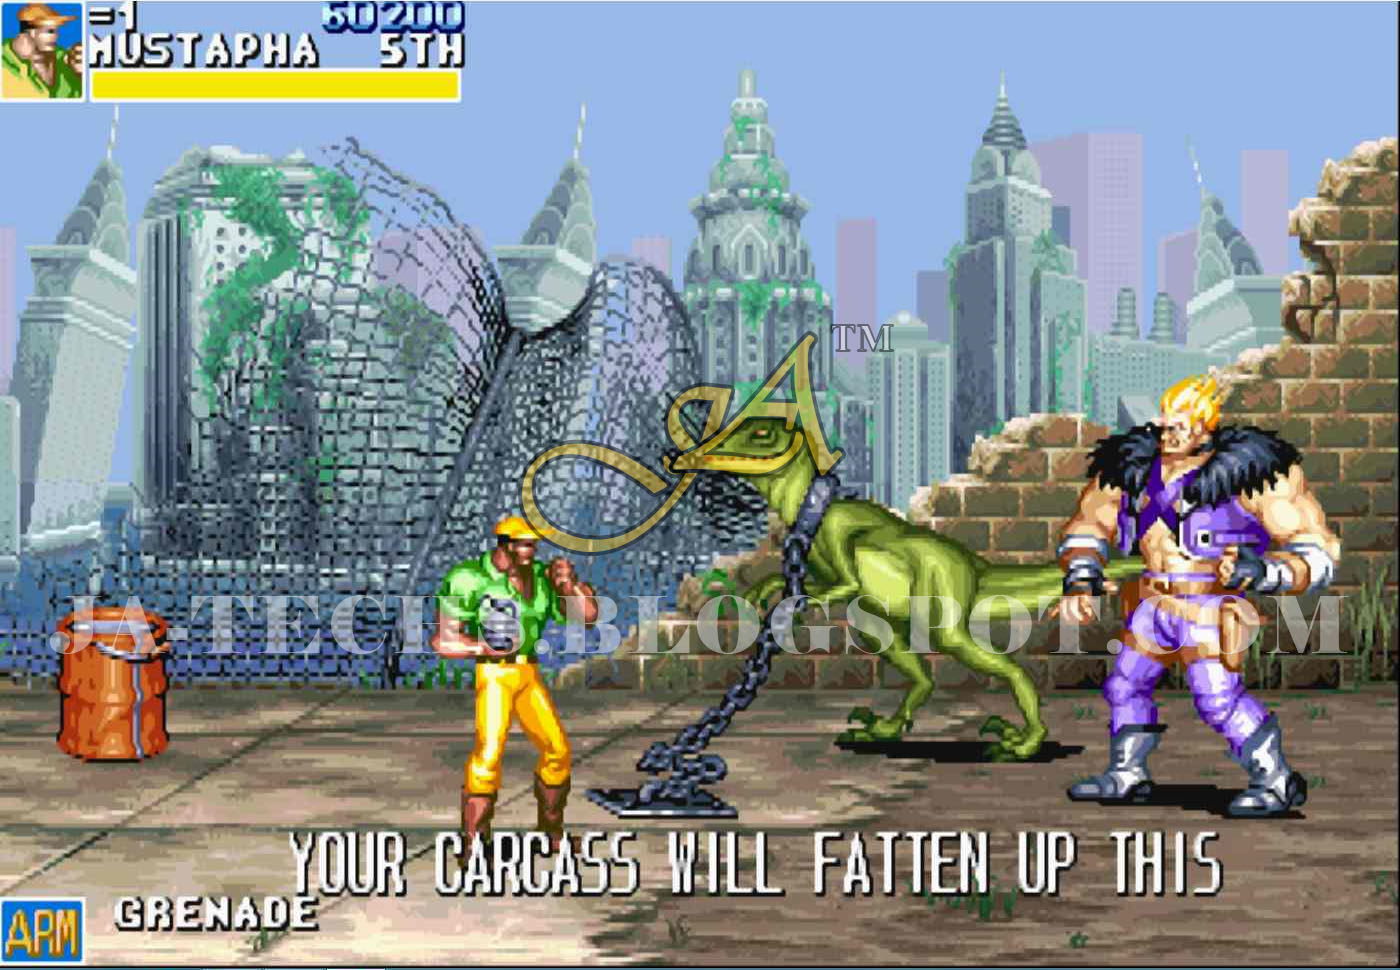 PC DINOSAURS MUSTAPHA TÉLÉCHARGER CADILLACS AND